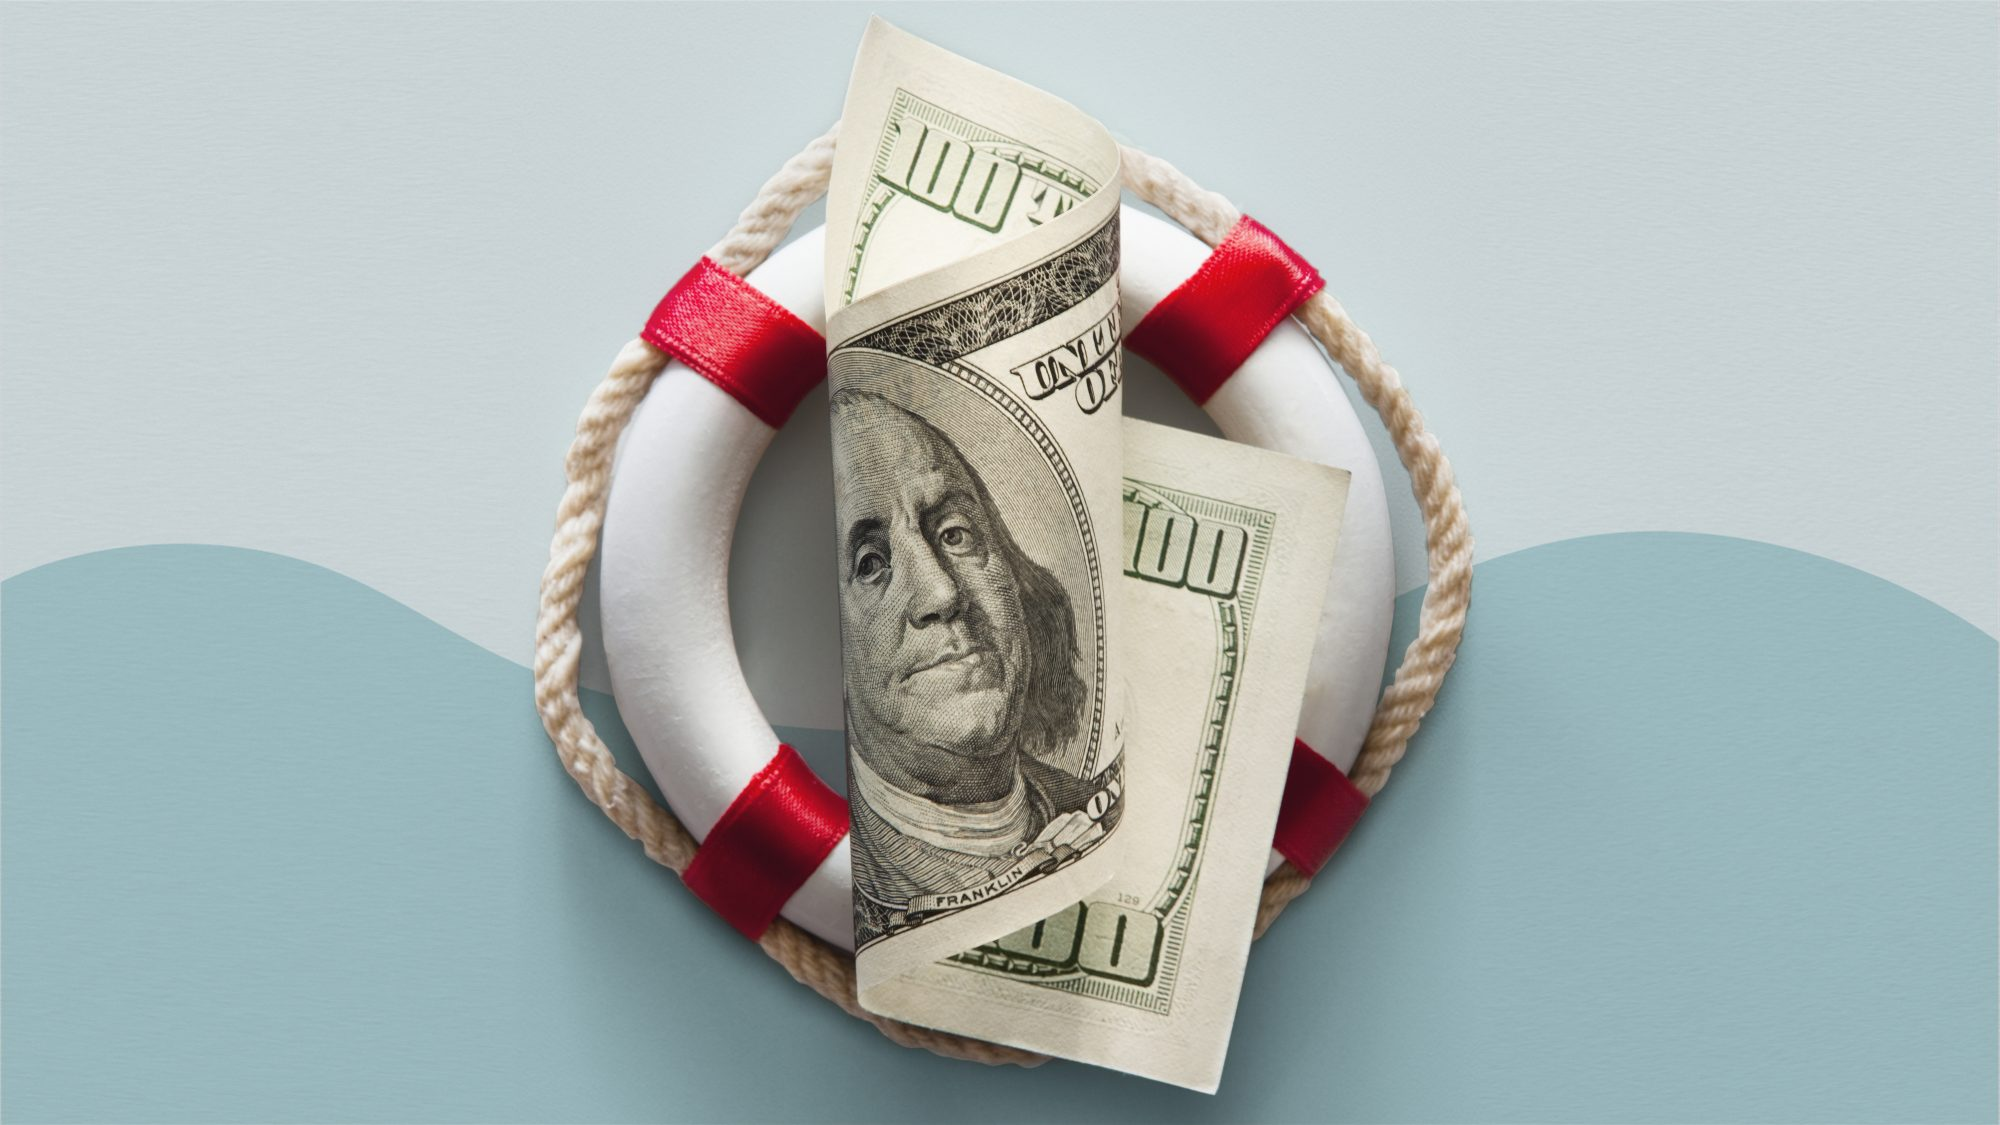 American rescue plan - stimulus checks, child tax credits, and more updates: $100 bill and life preserver